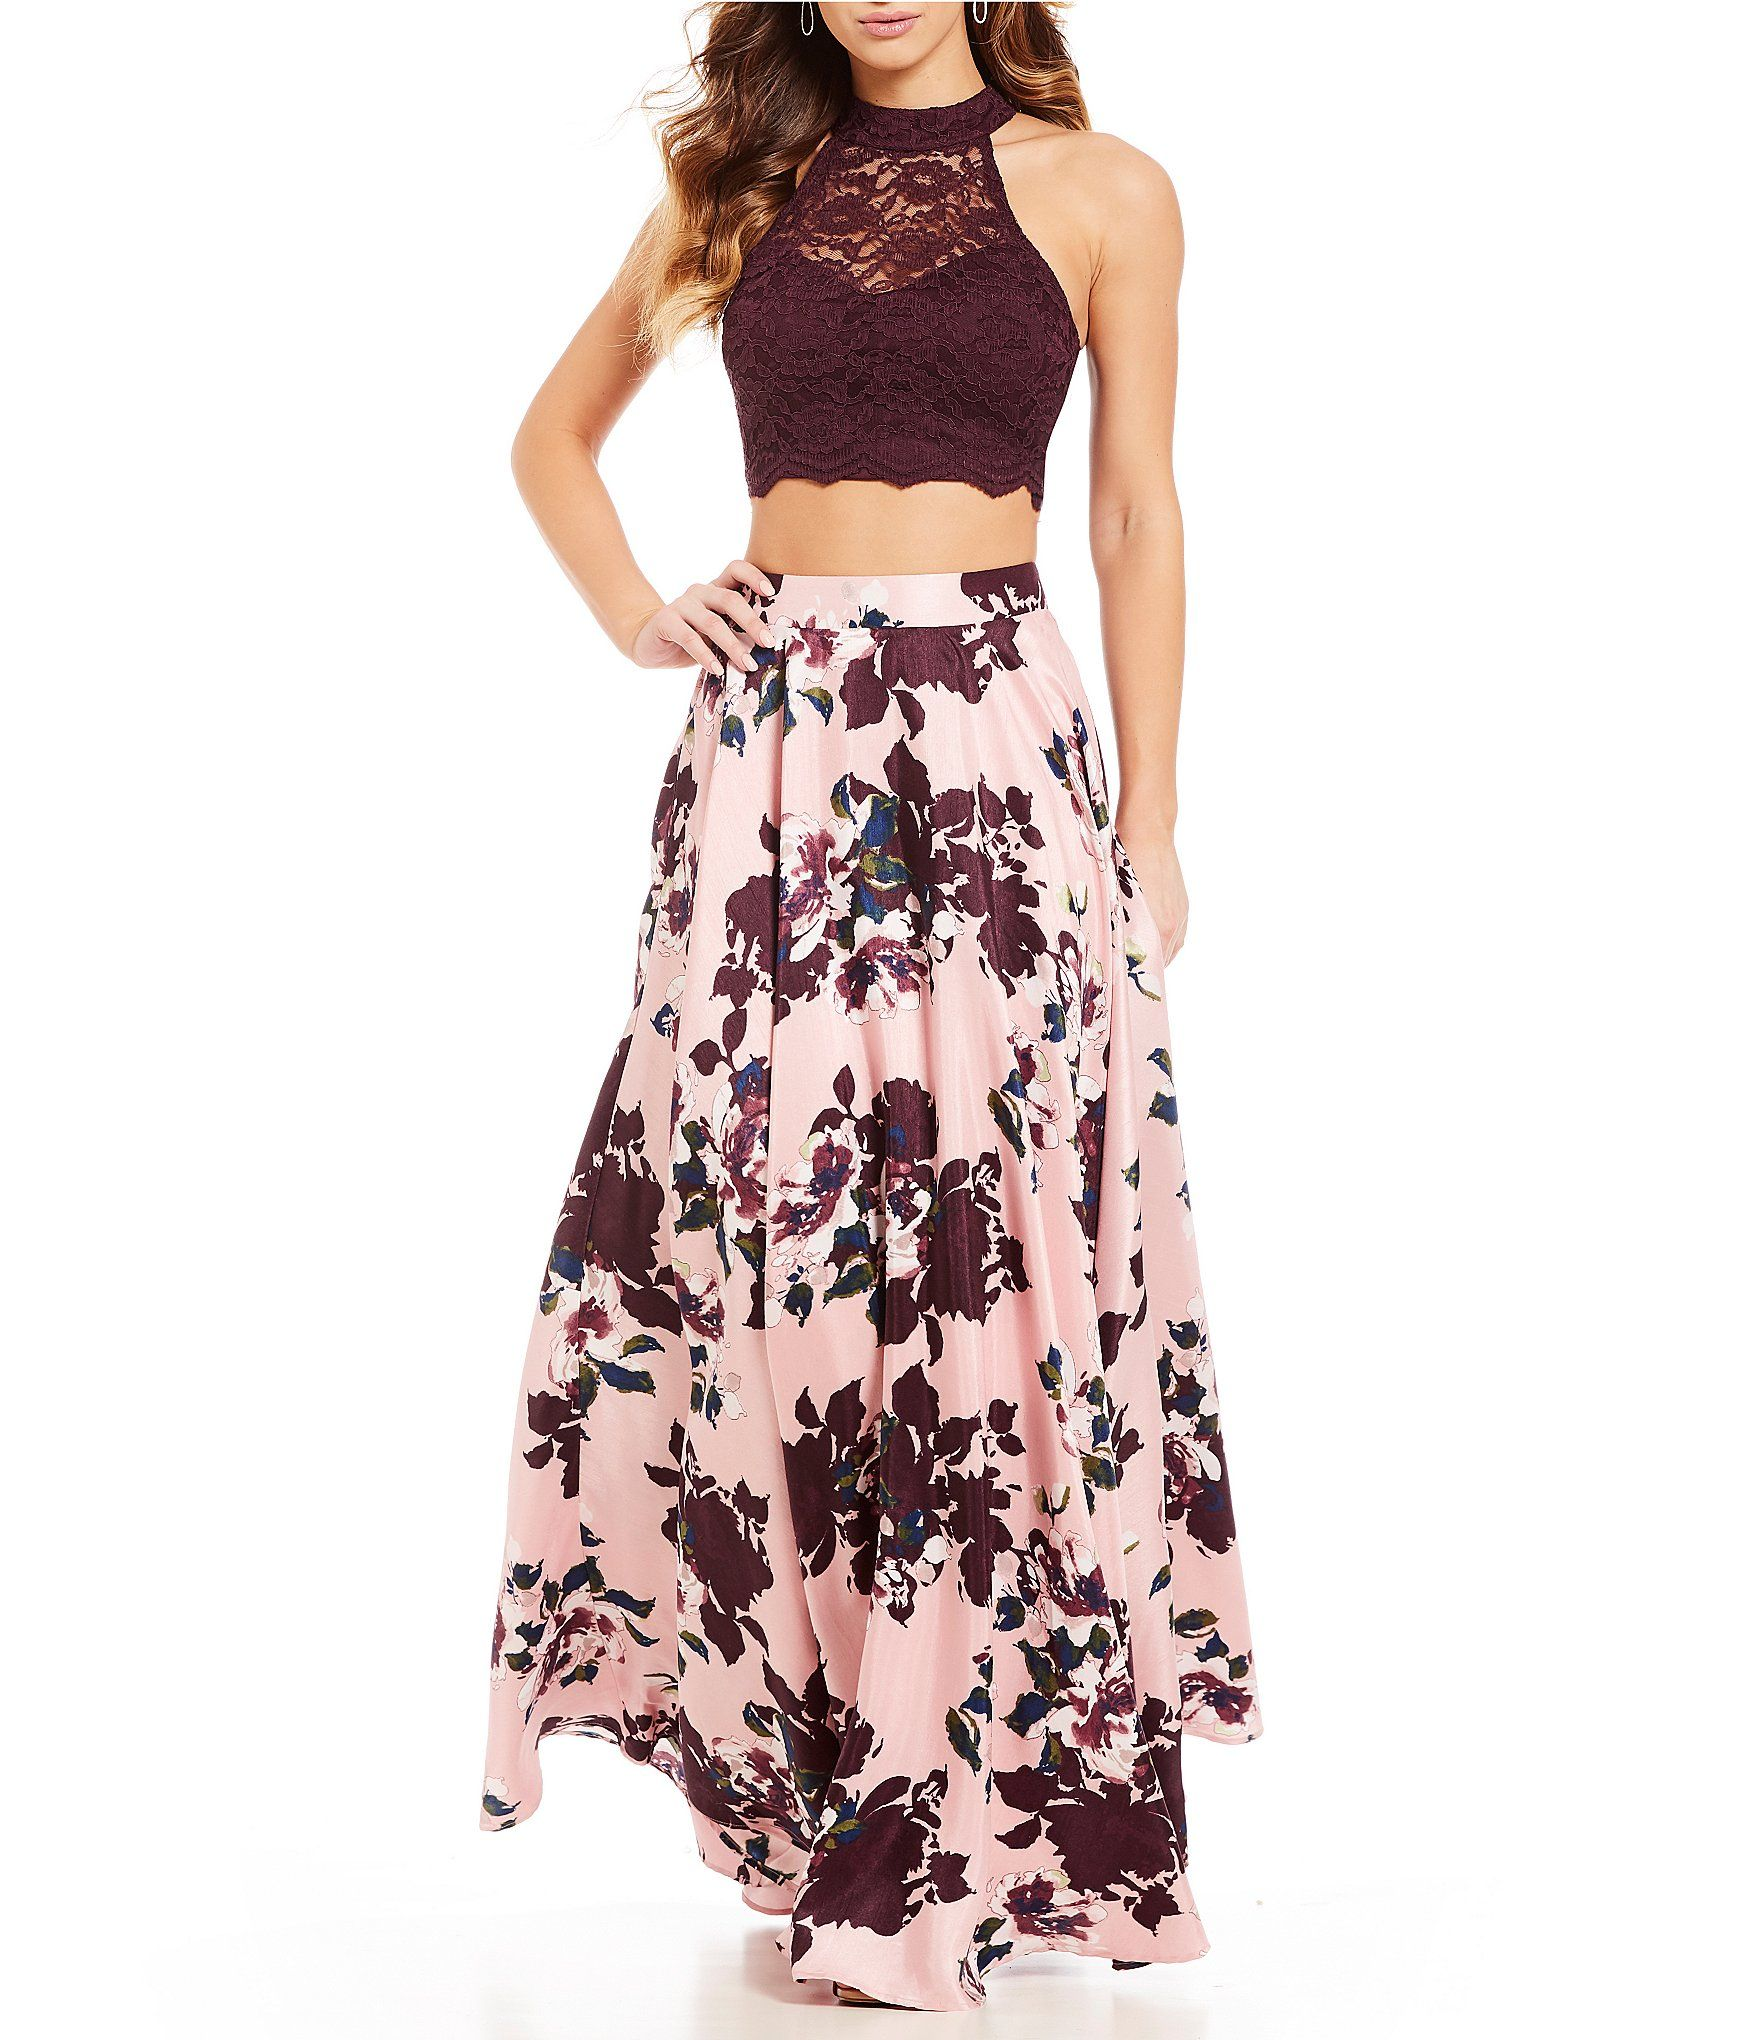 Shop For Jodi Kristopher Mock Neck Lace Top With Floral Skirt Two